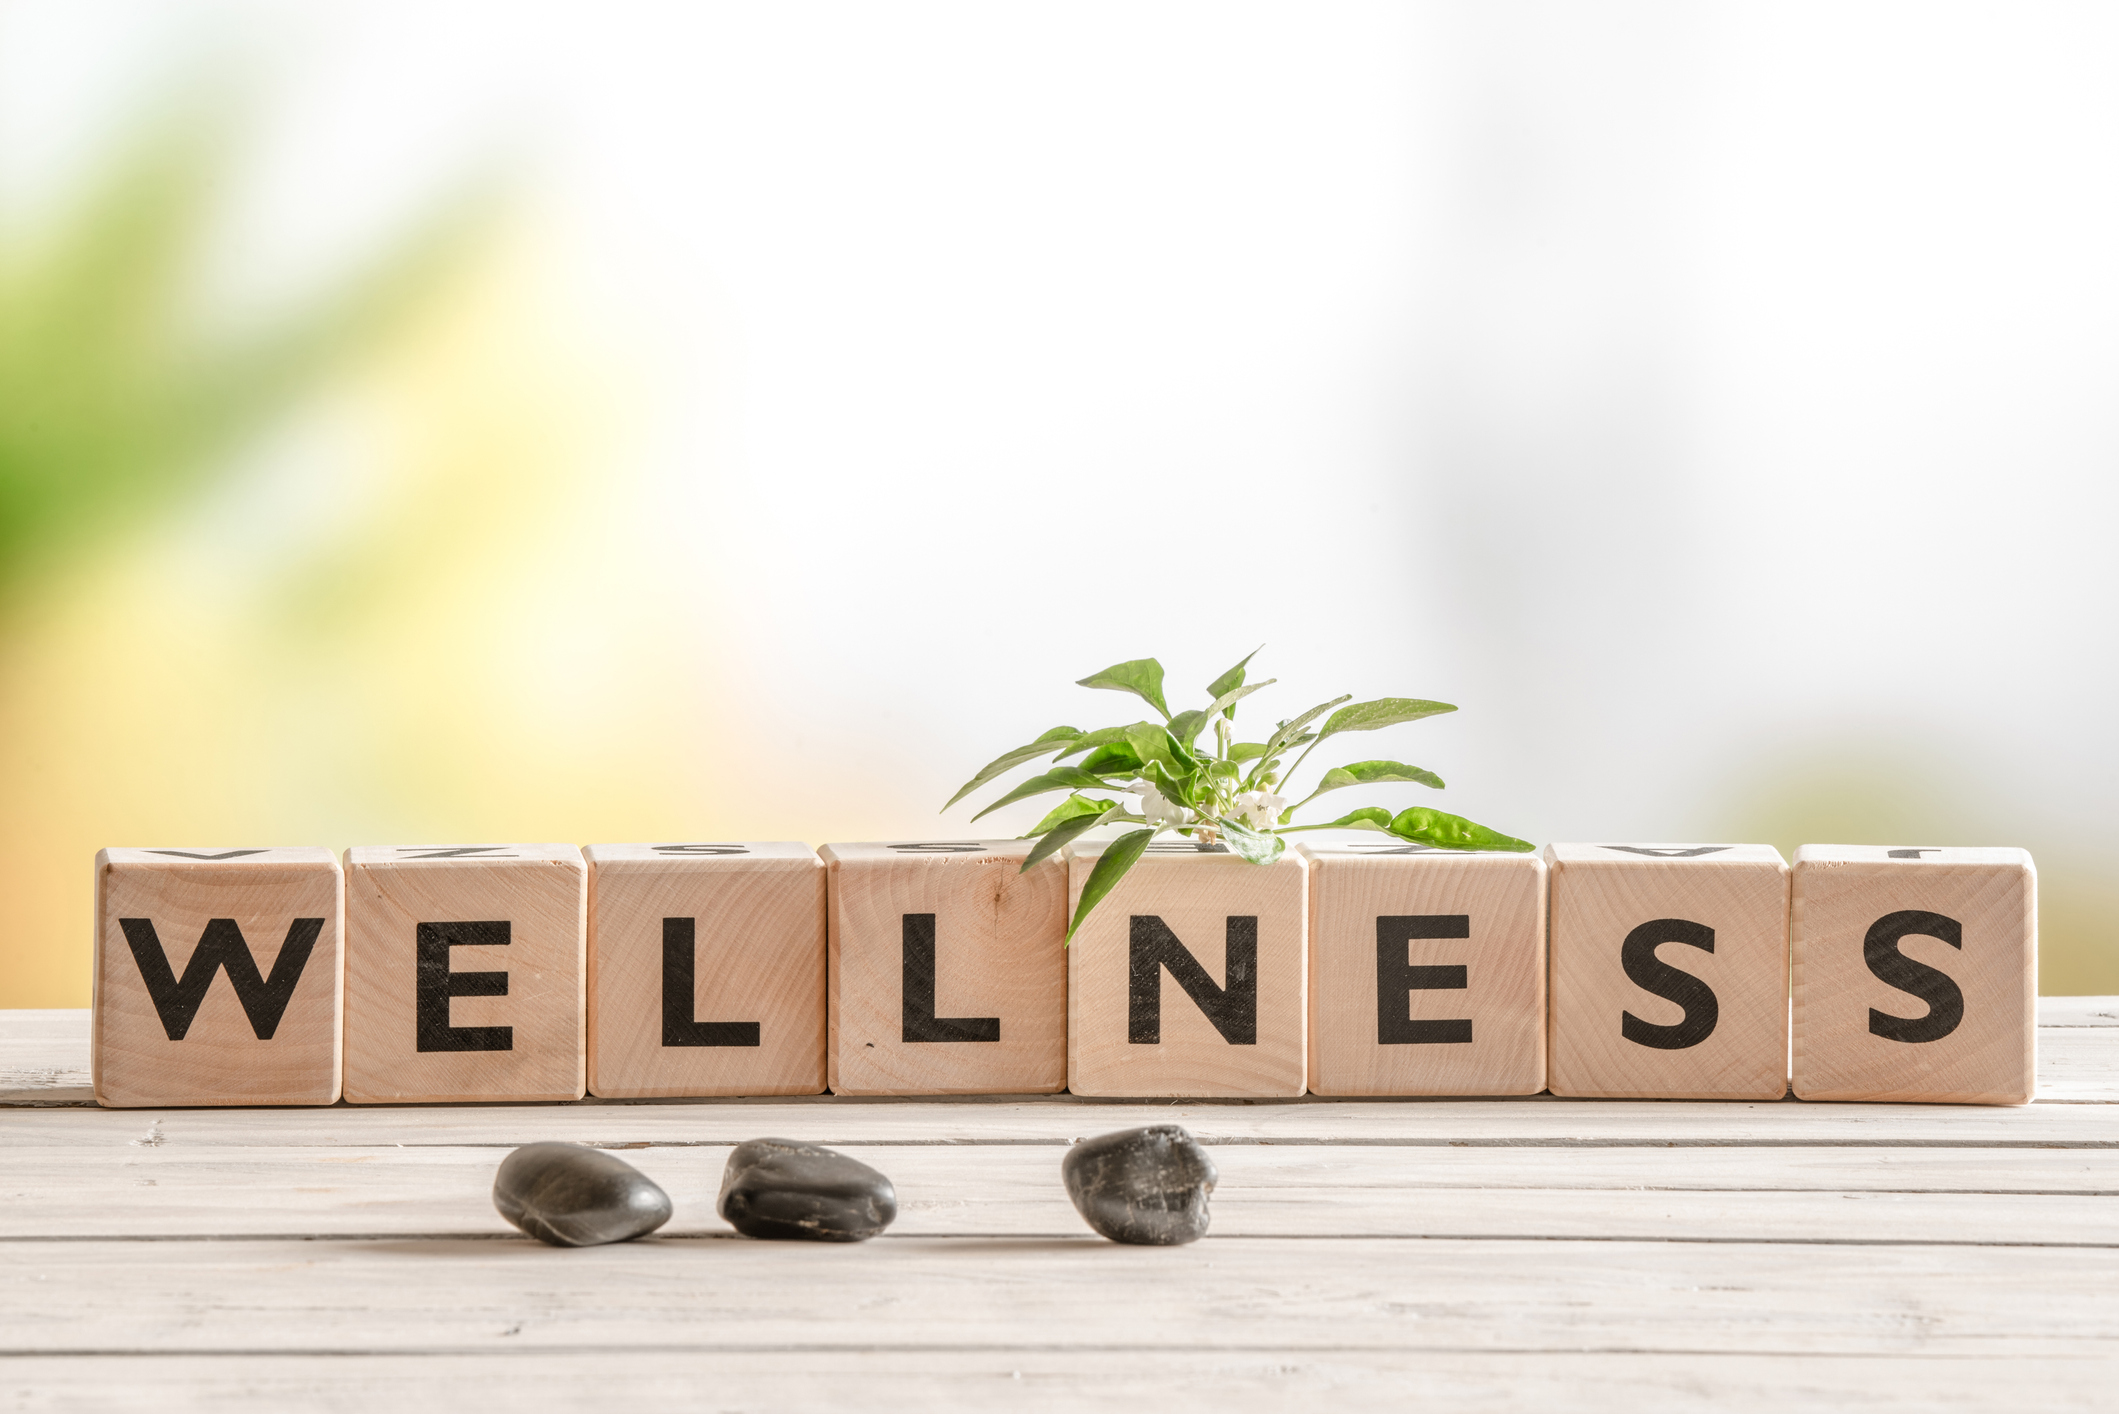 Industry insights: wellness, brought to you by Natwest